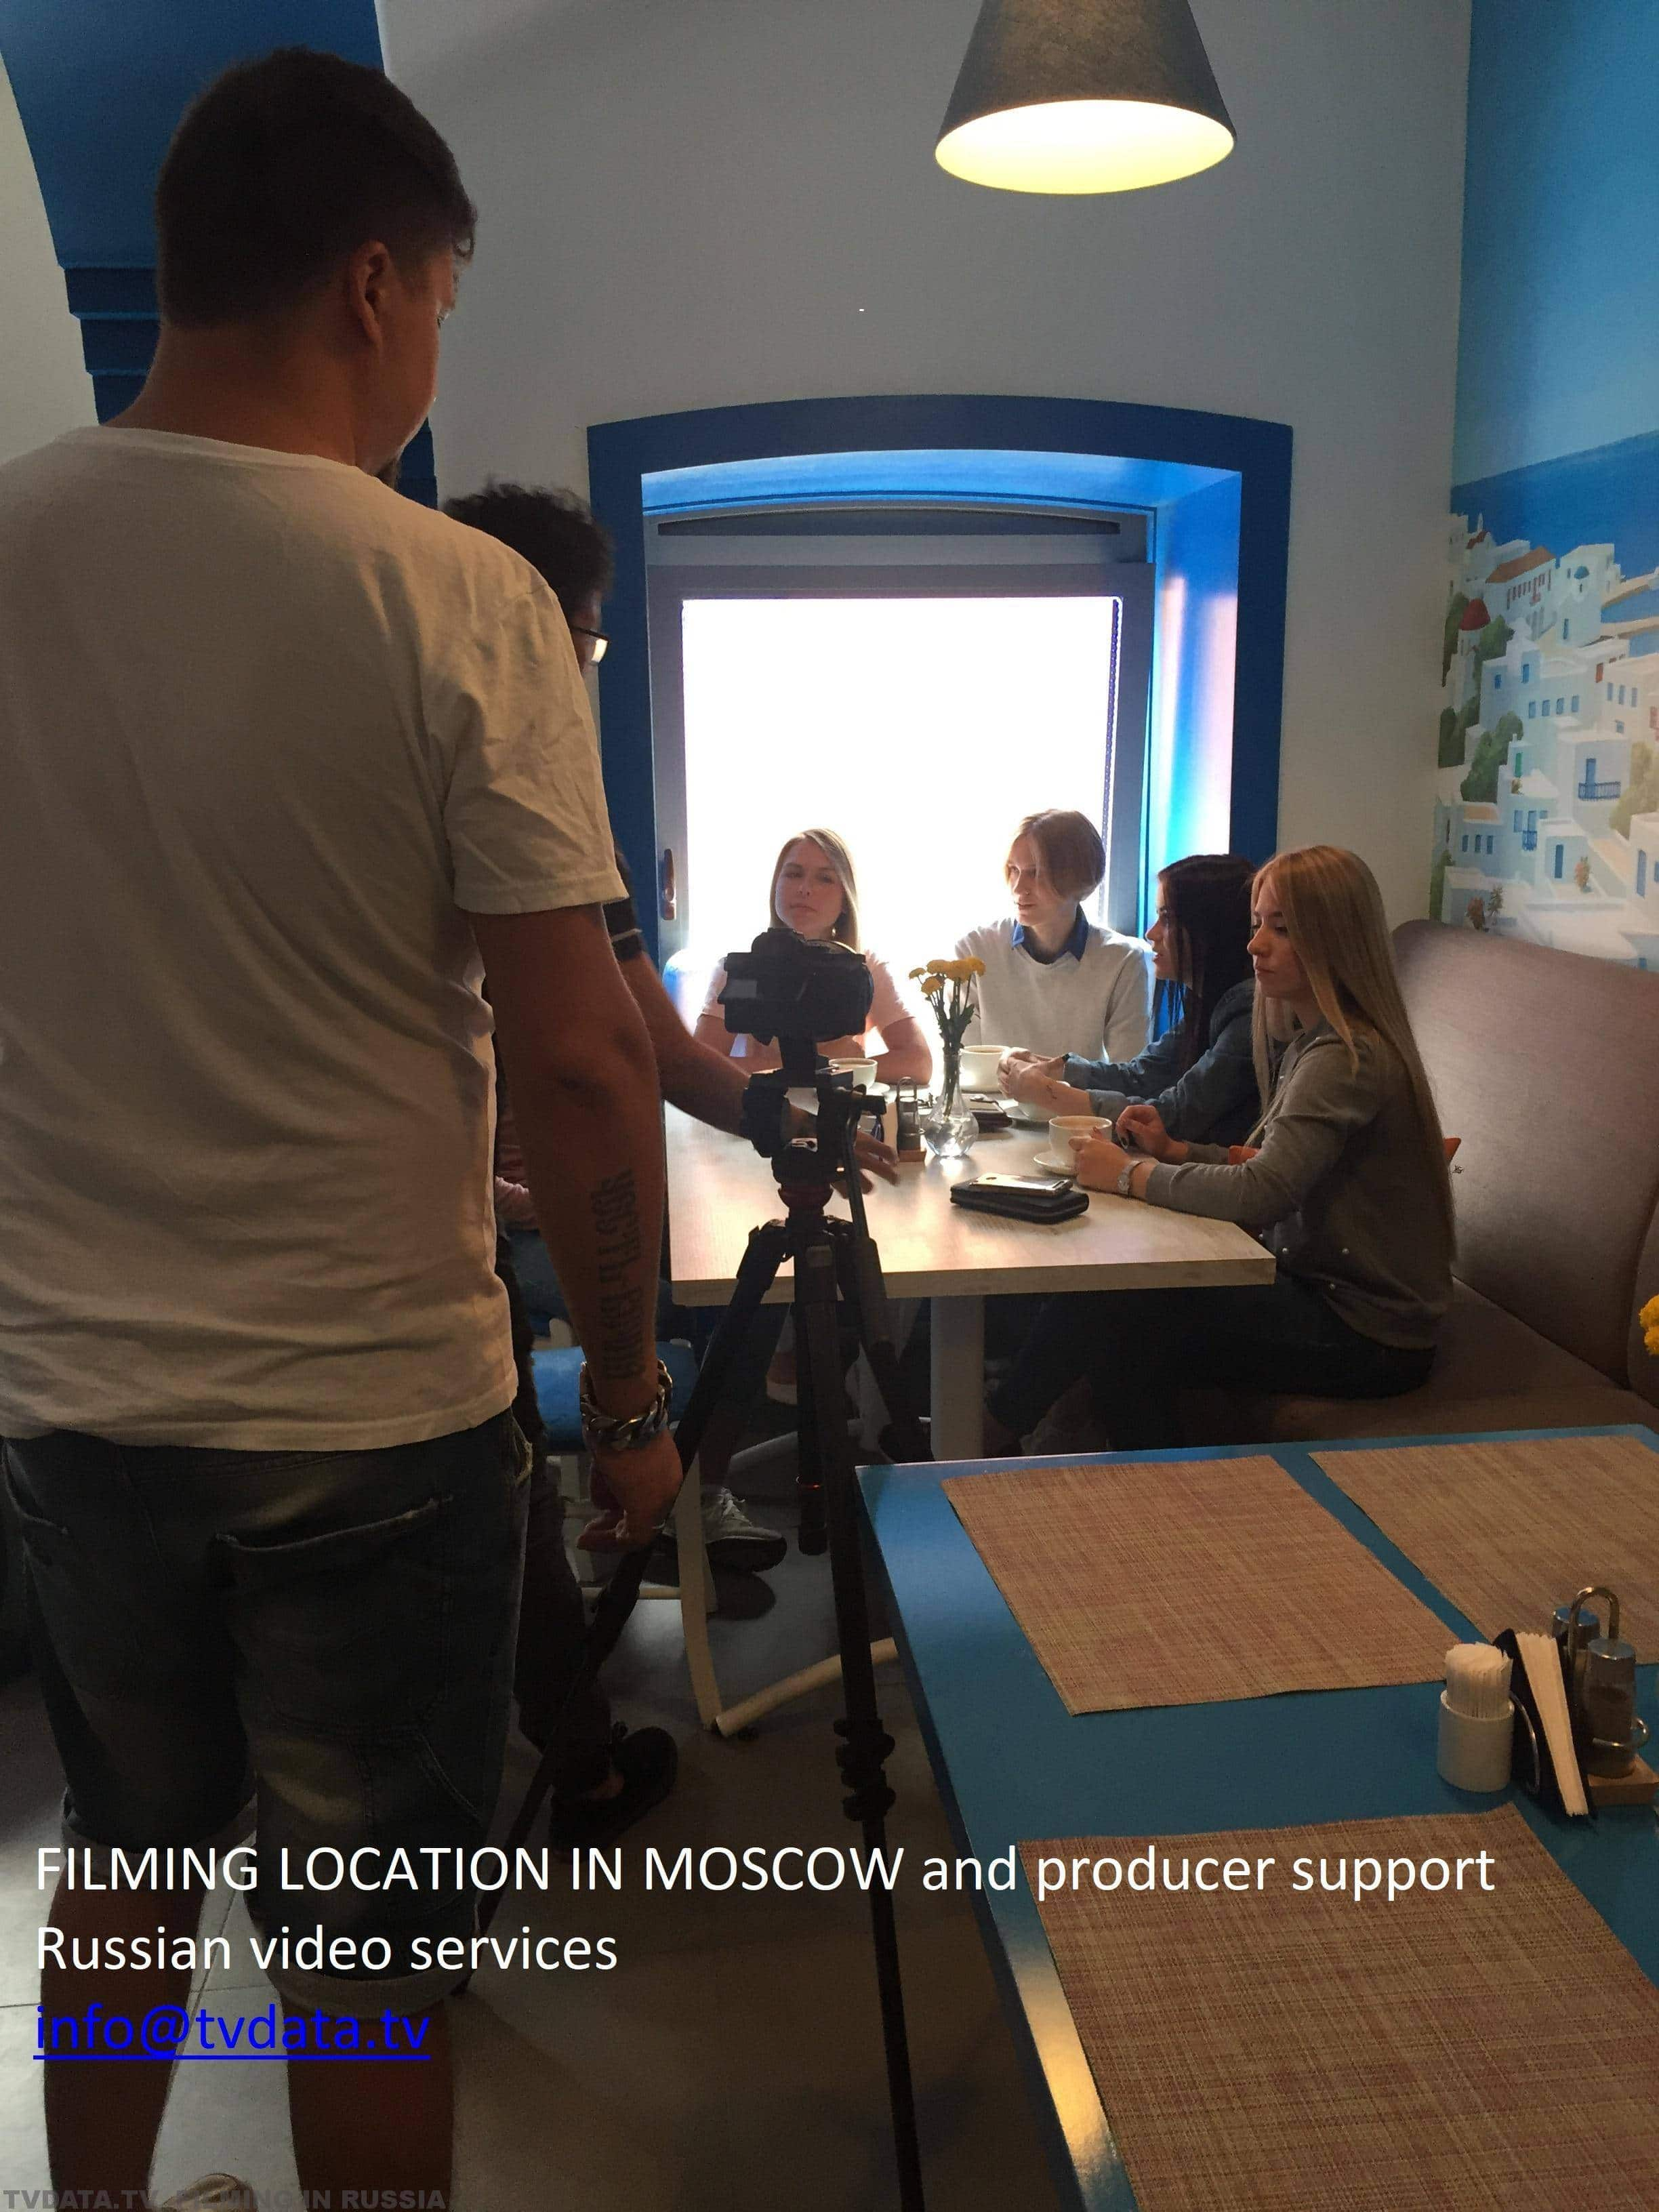 FILMING LOCATION IN MOSCOW and producer support Russian video services info@tvdata.tv